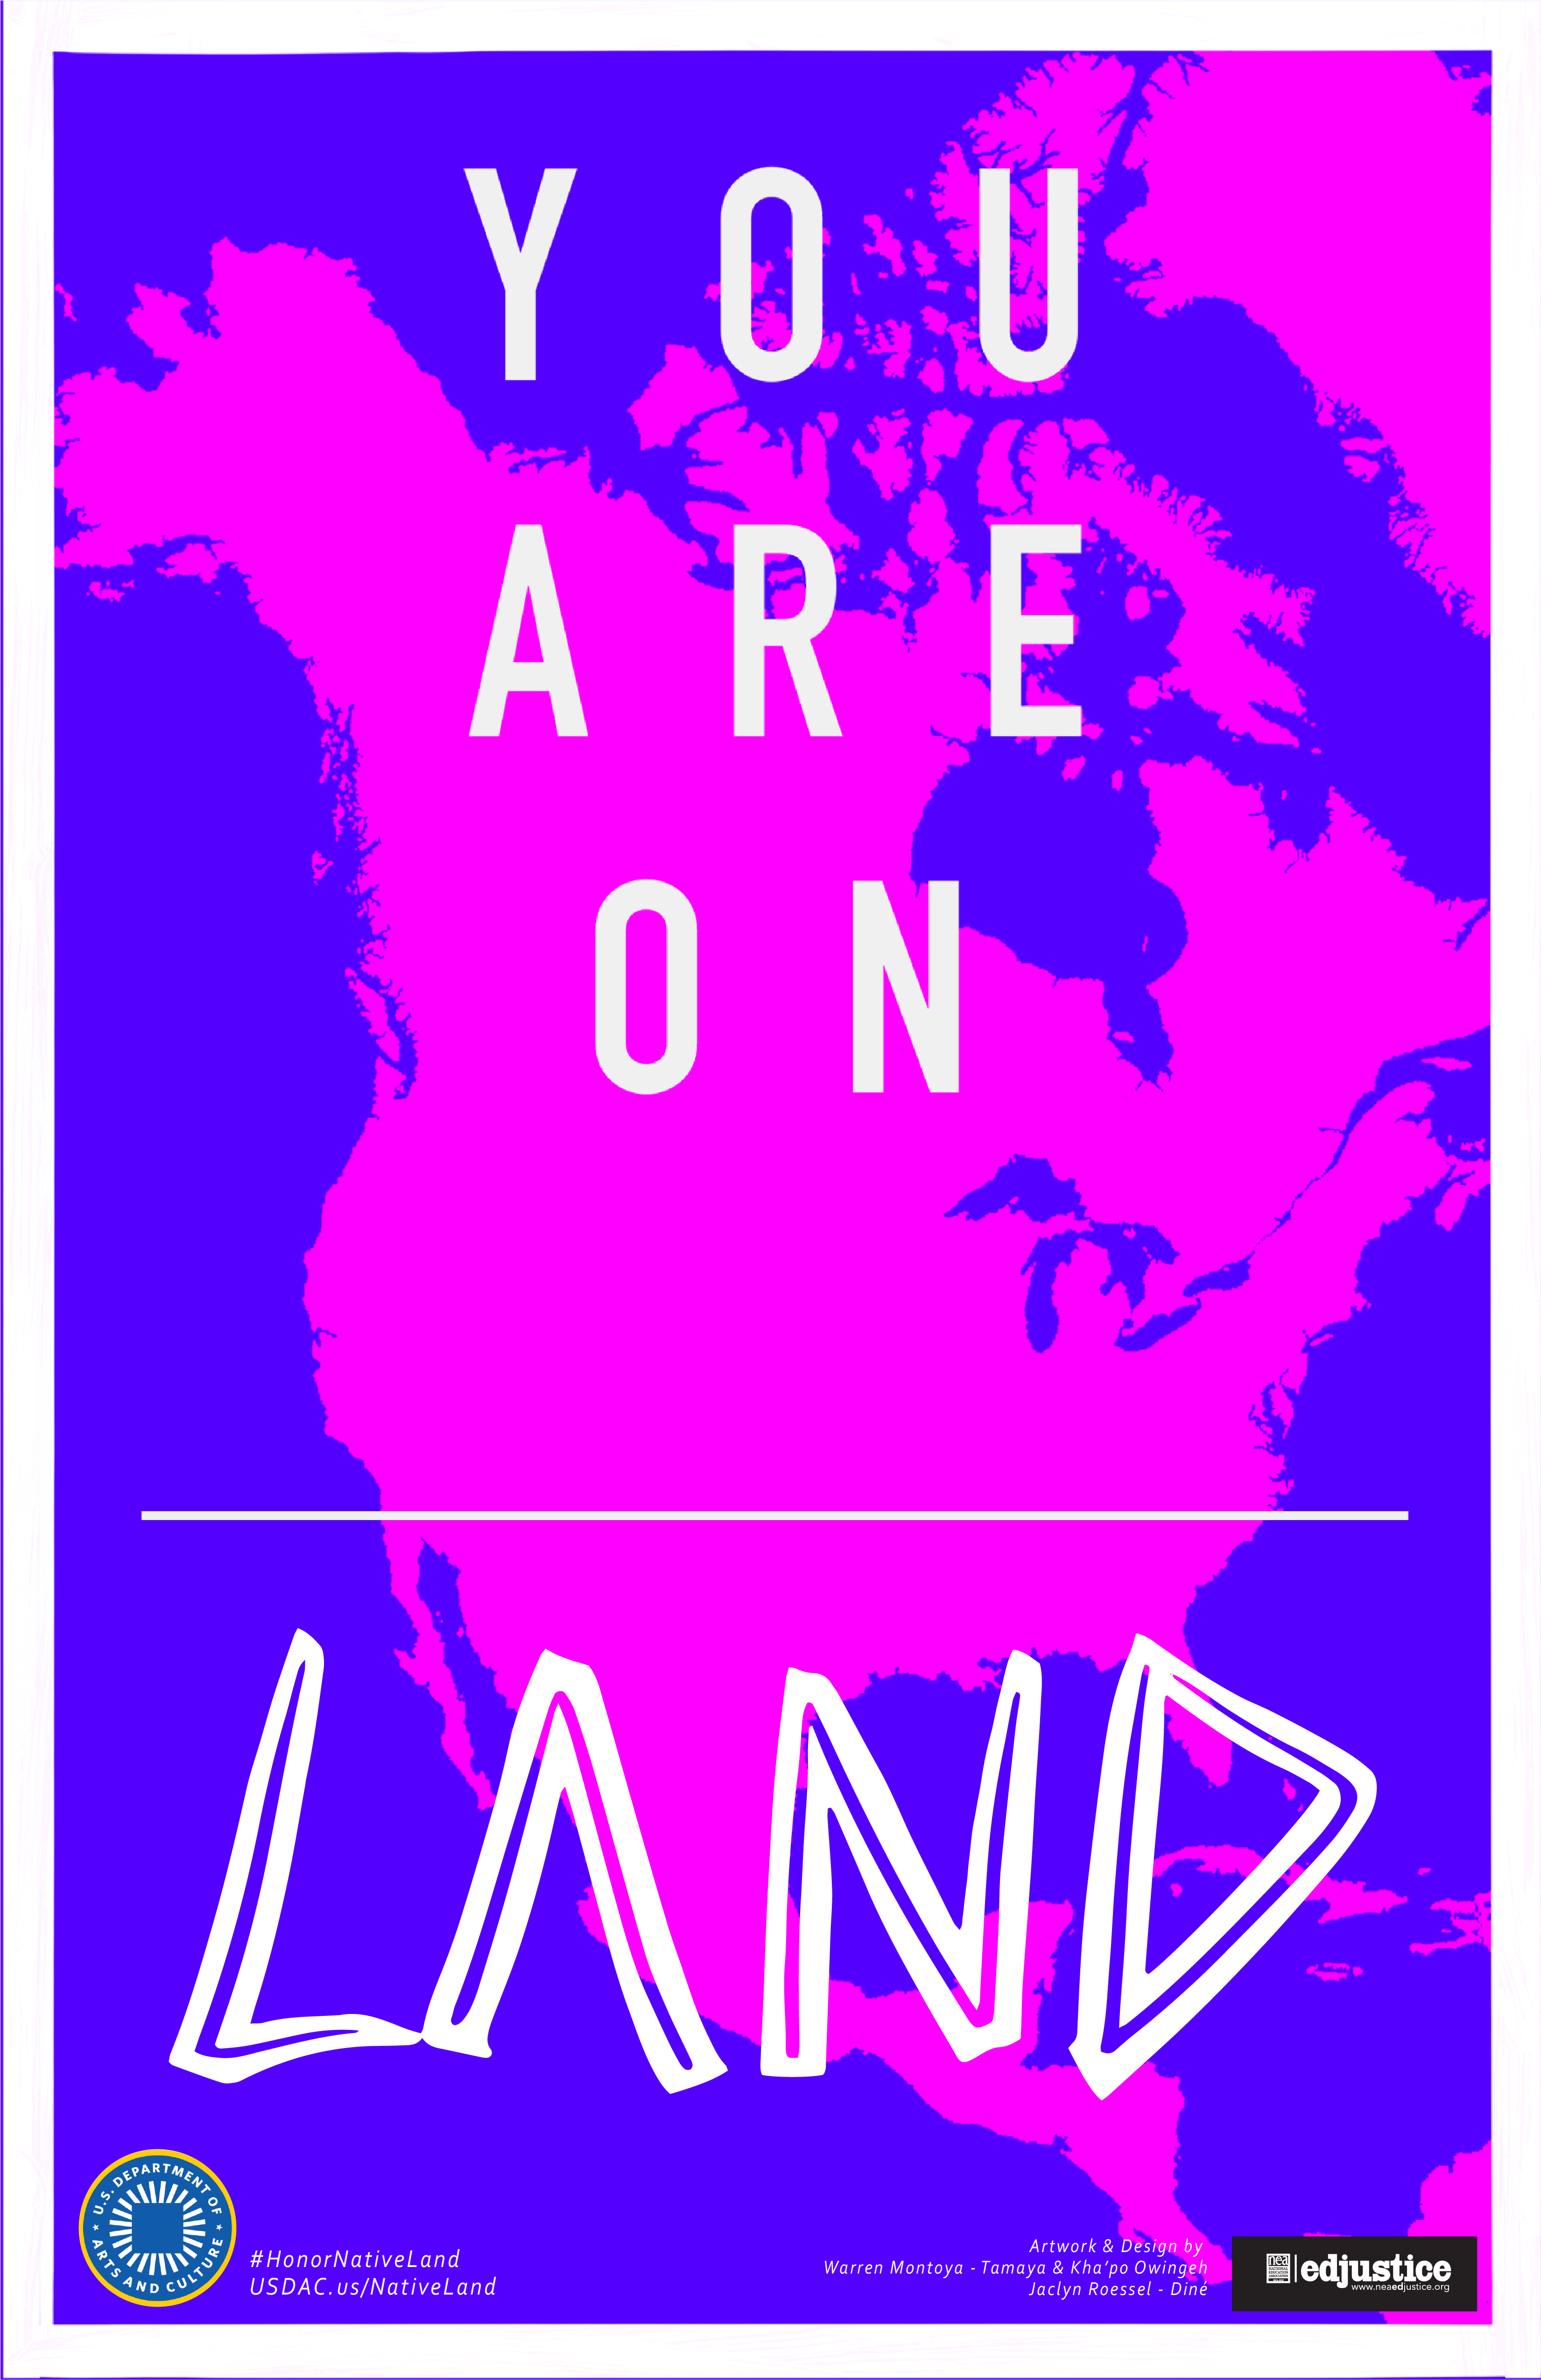 YouAreOn_Land_Turtle_Island_Poster_(1)_2.png